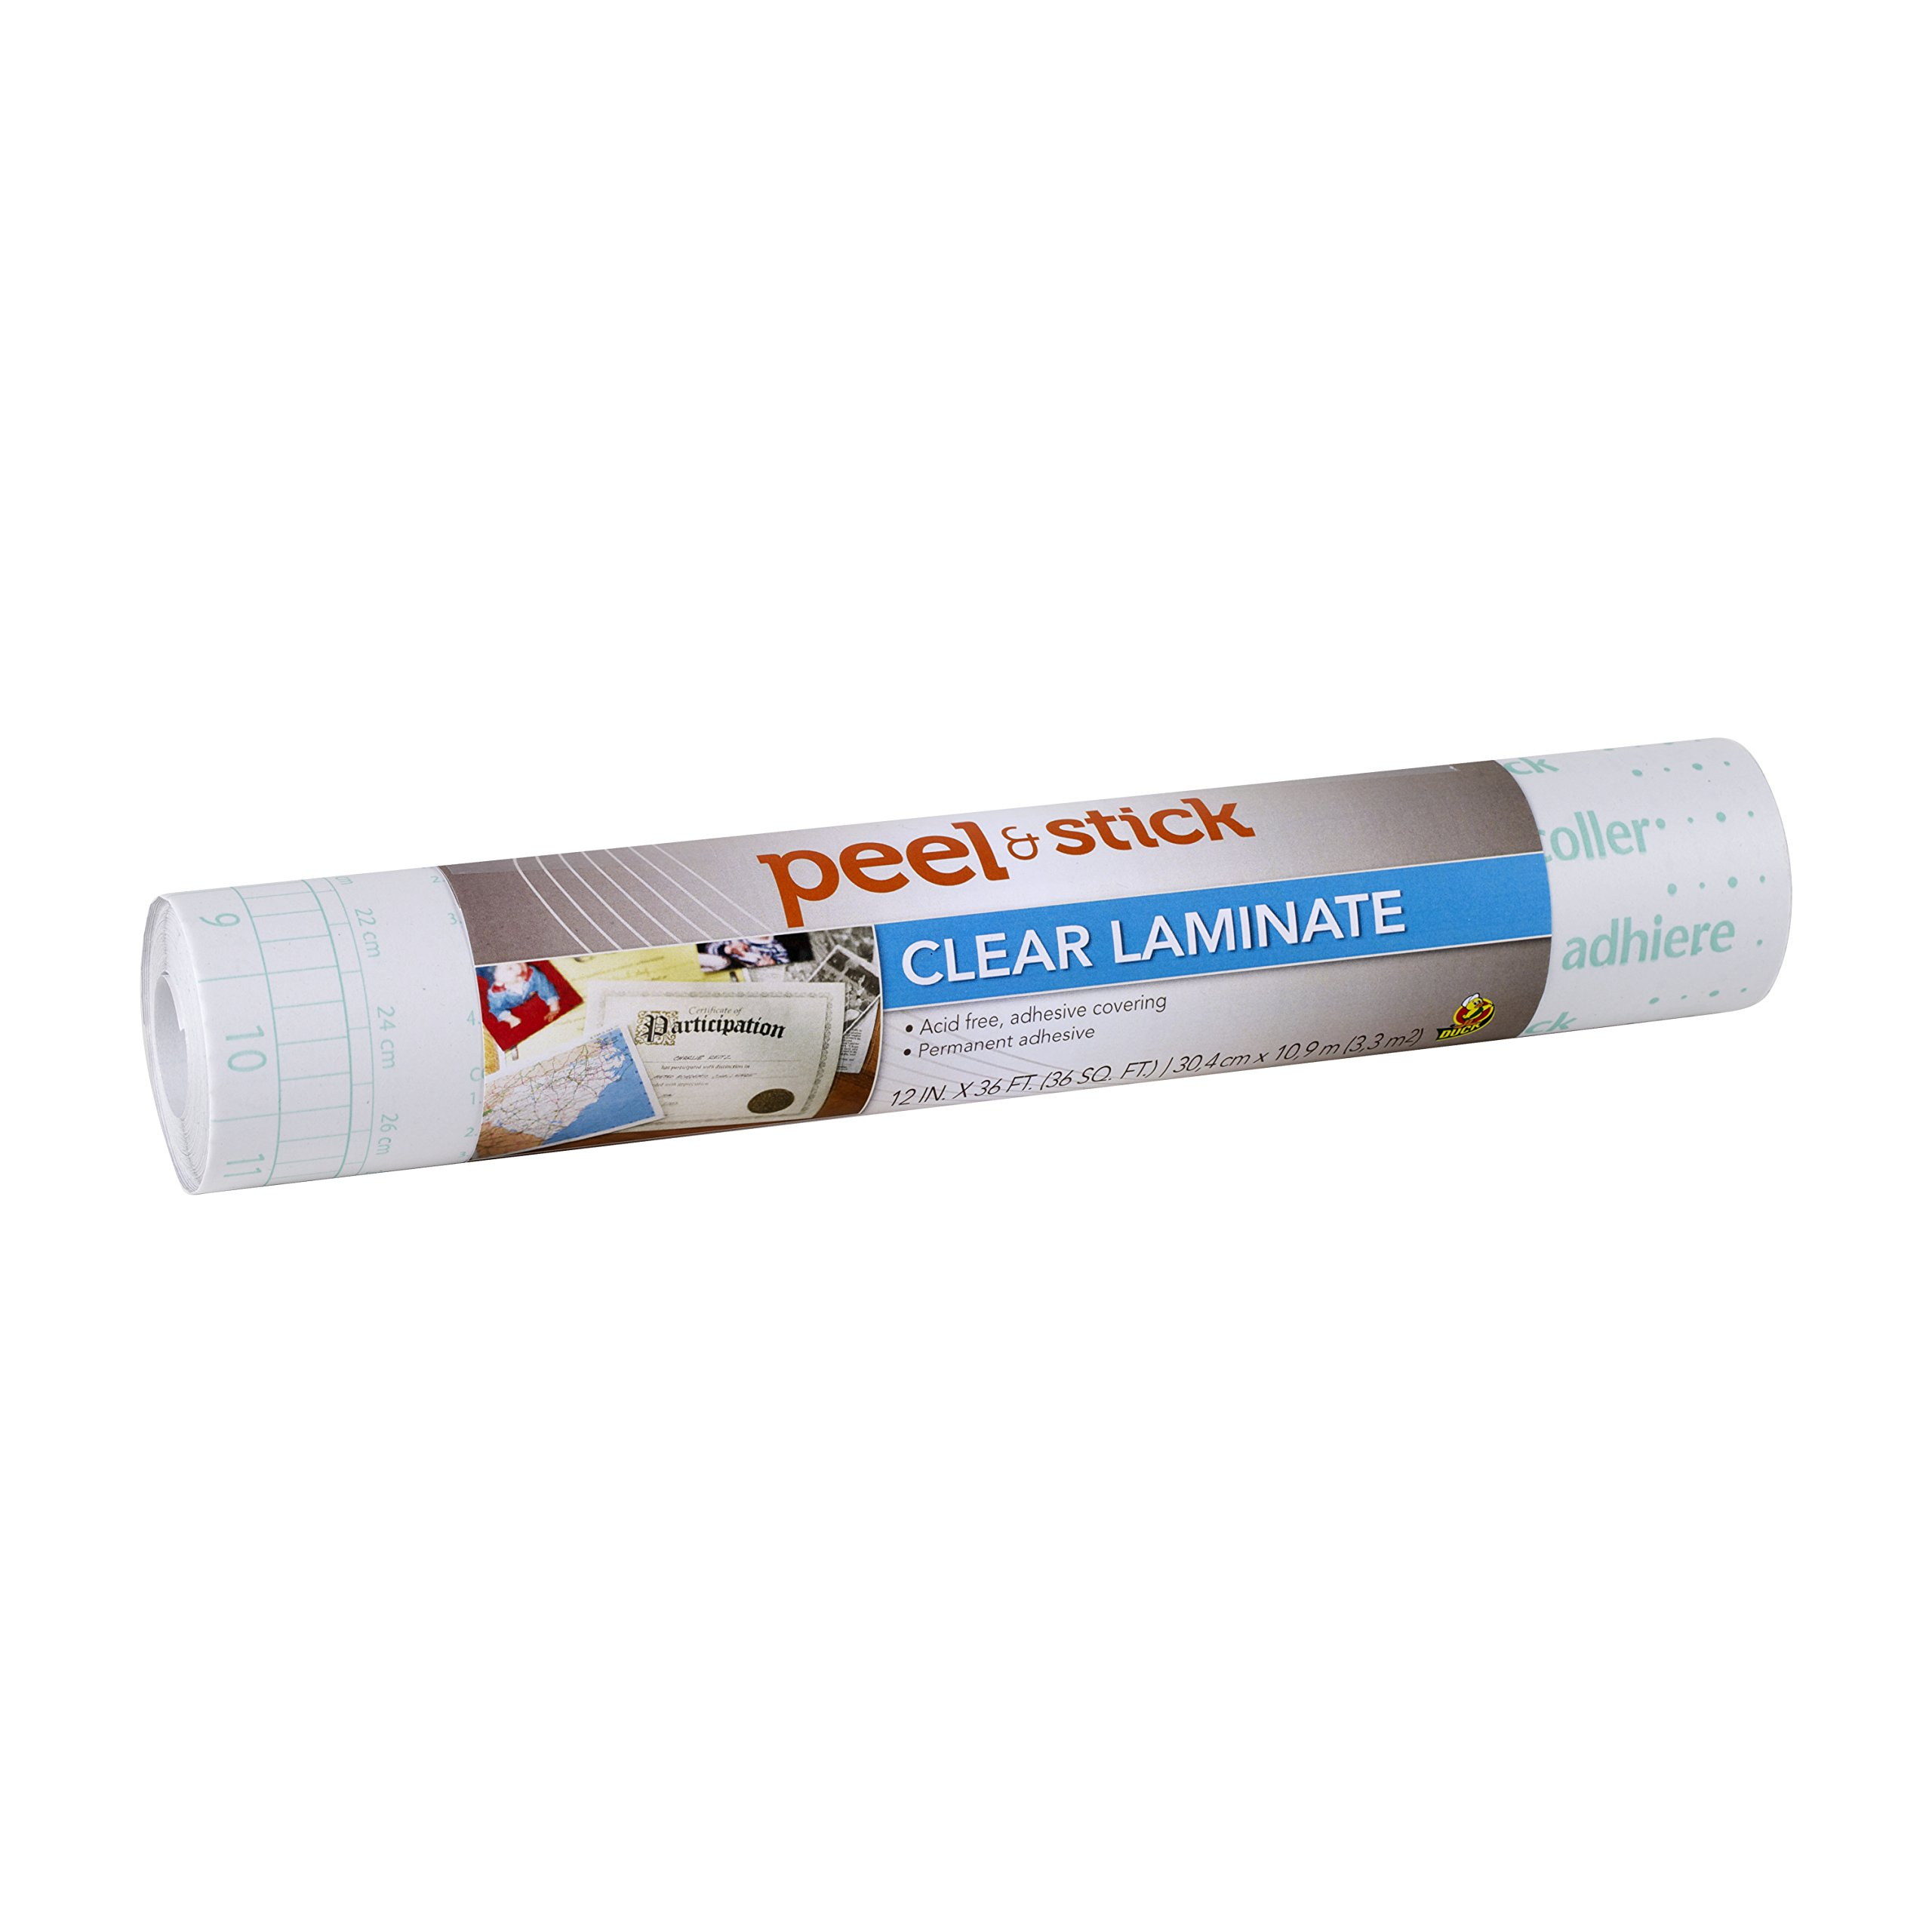 Duck Brand 1115496 Peel N' Stick Laminate Adhesive Shelf Liner, 12-Inch x 36-Feet, Clear